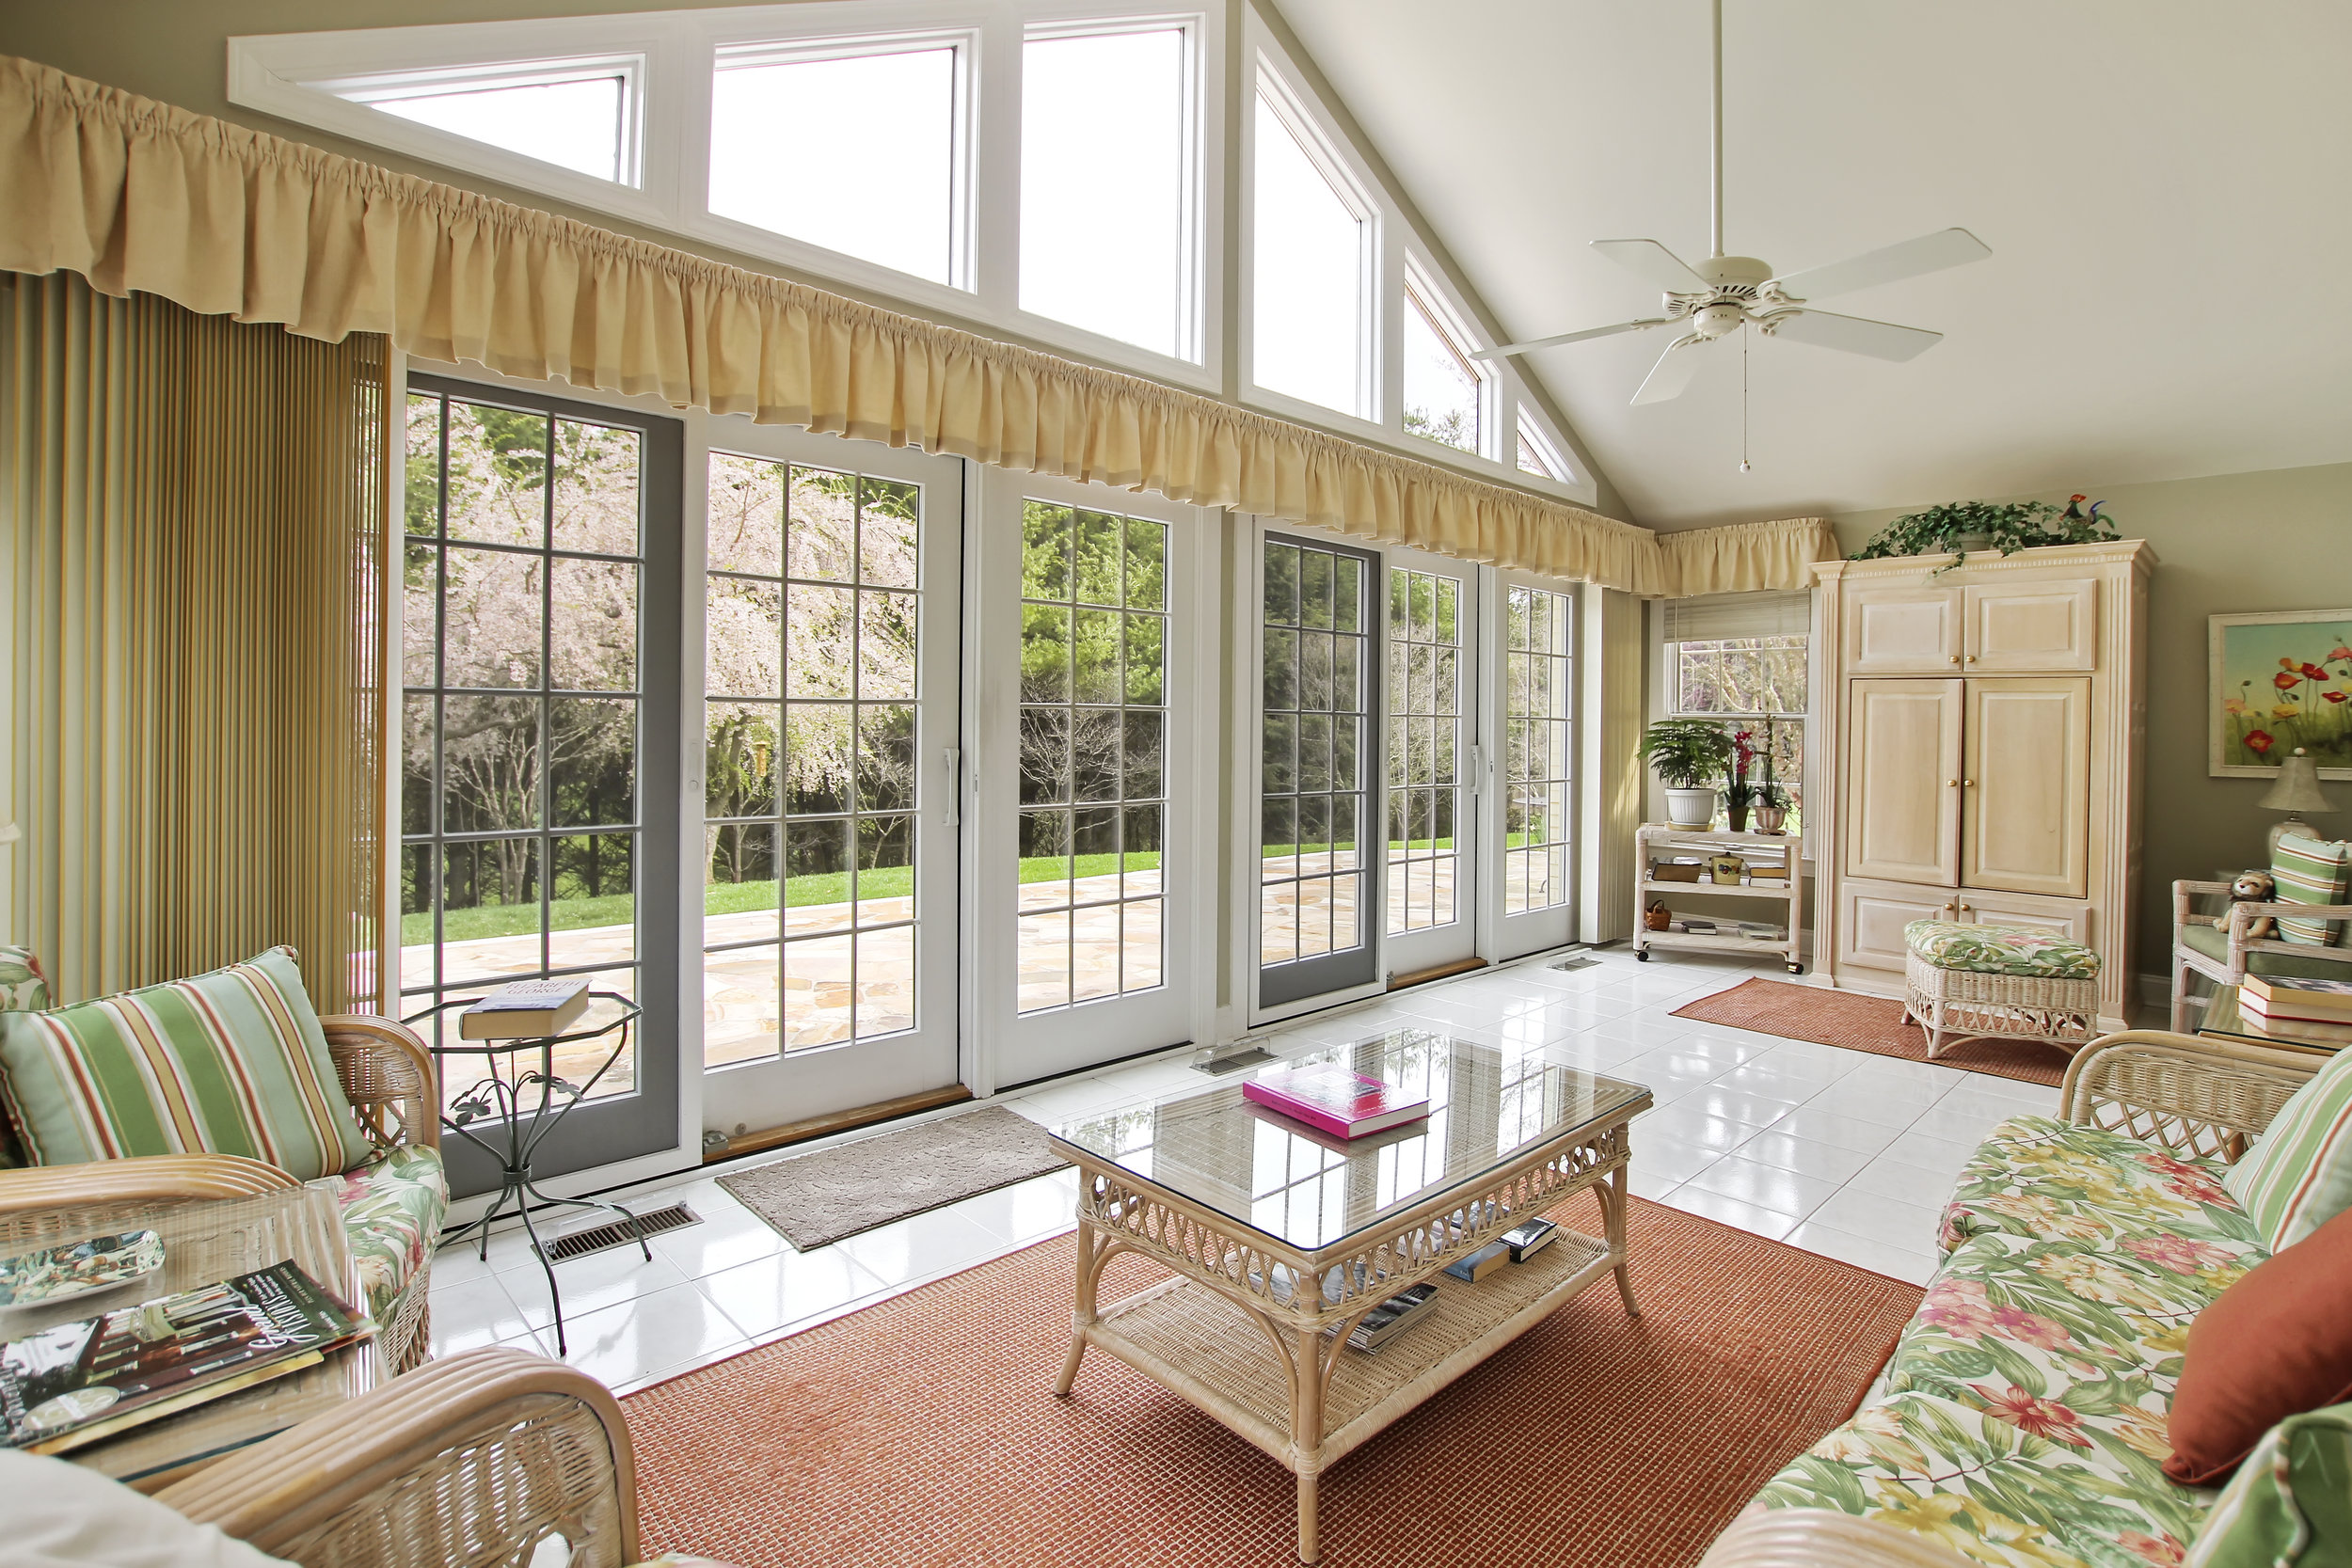 225 Emerald Blvd Sunroom